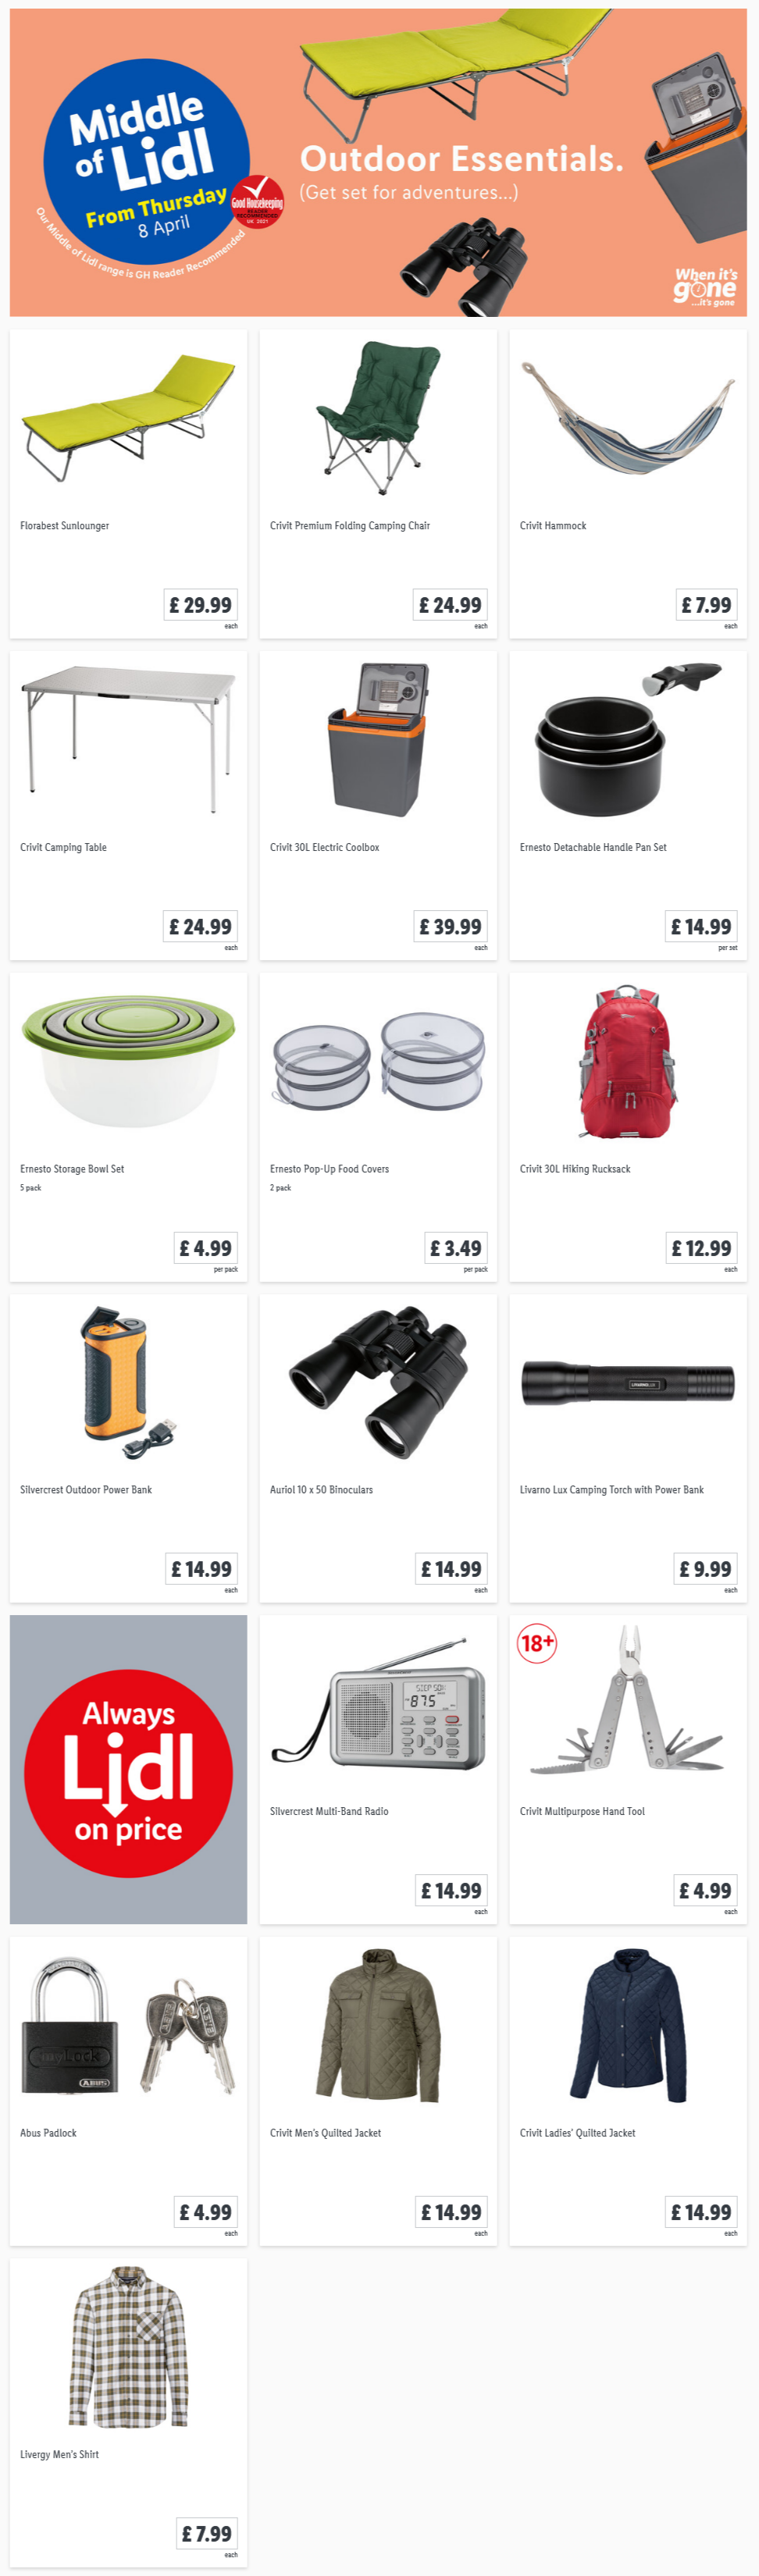 LIDL Offers this Thursday Outdoor Essentials From 8th April 2021